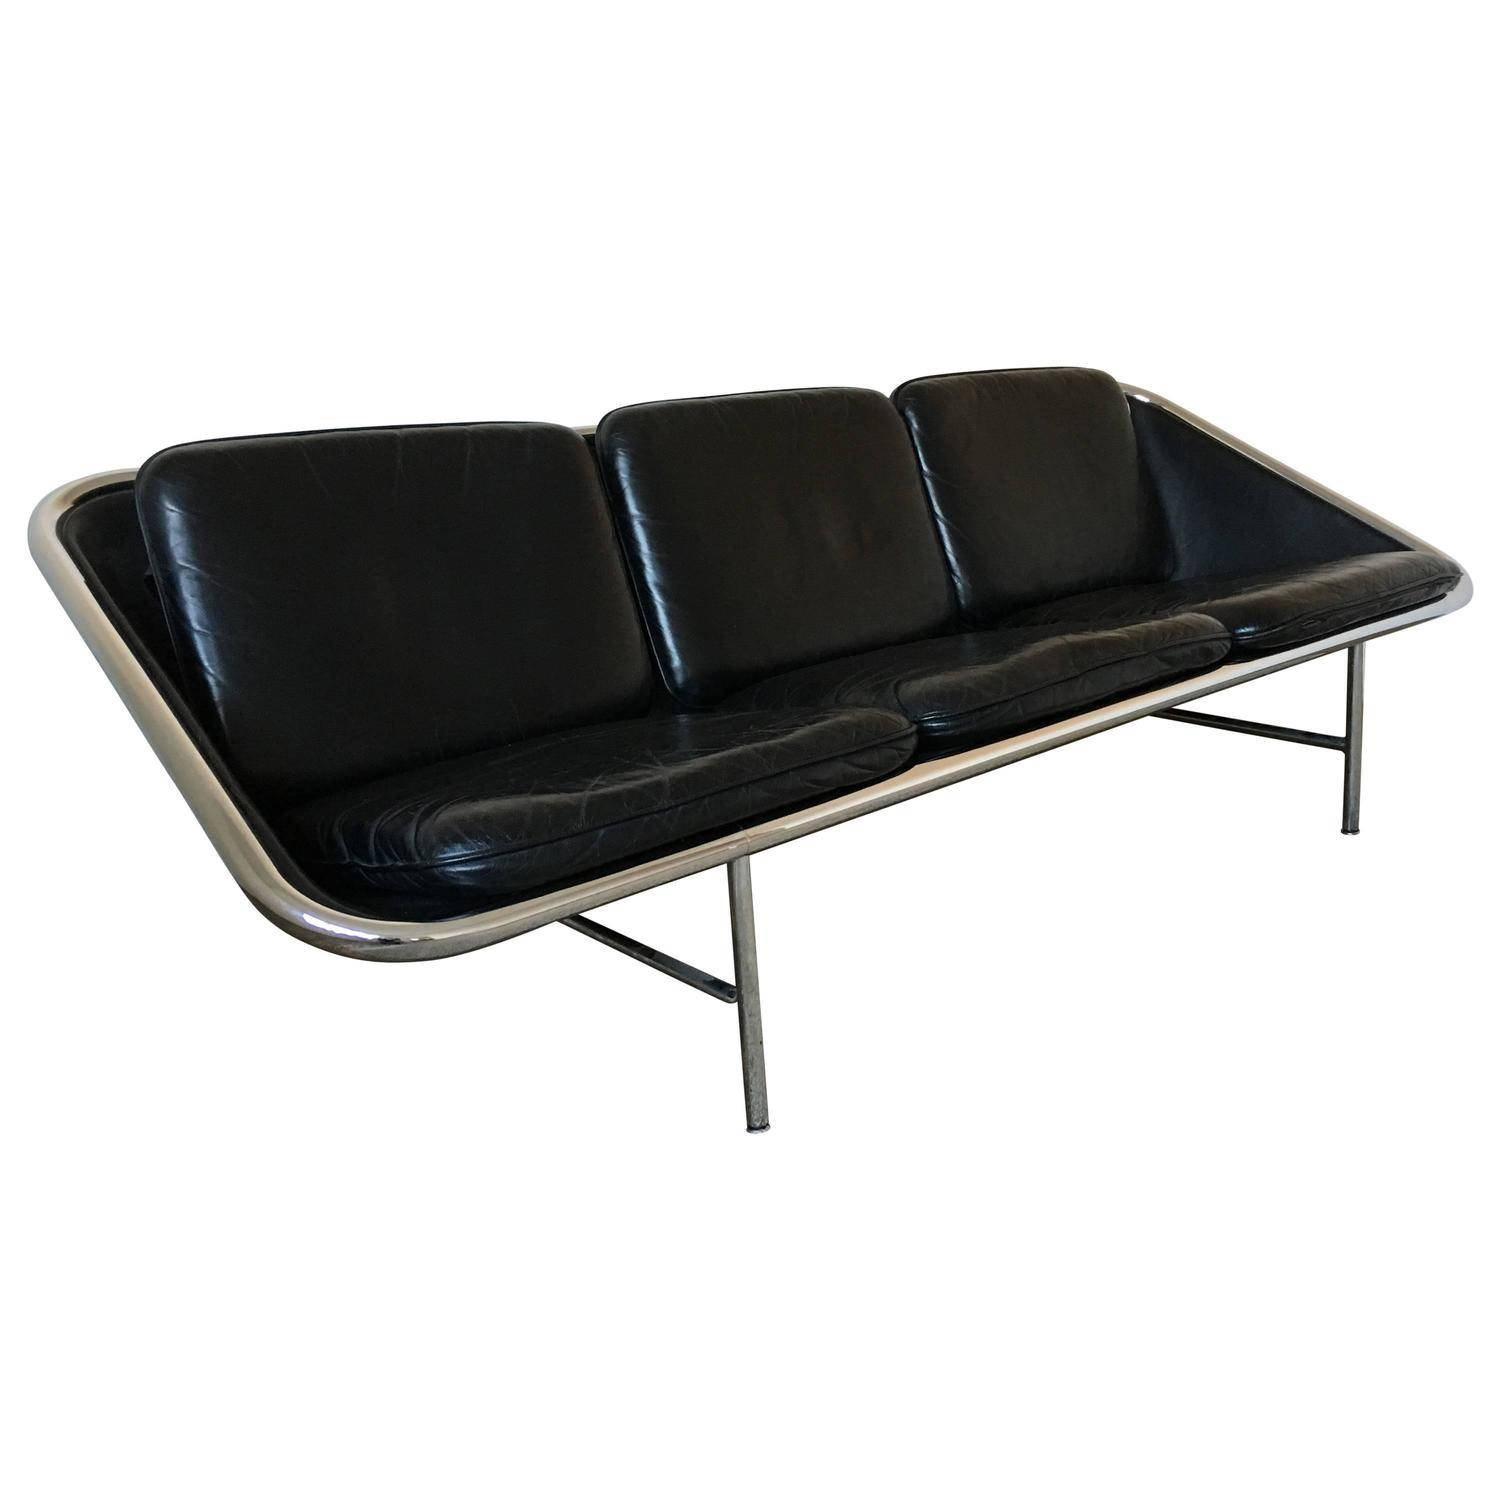 George Nelson Black Leather Sling Sofa, Herman Miller, Circa 1960 in George Nelson Sofas (Image 5 of 15)